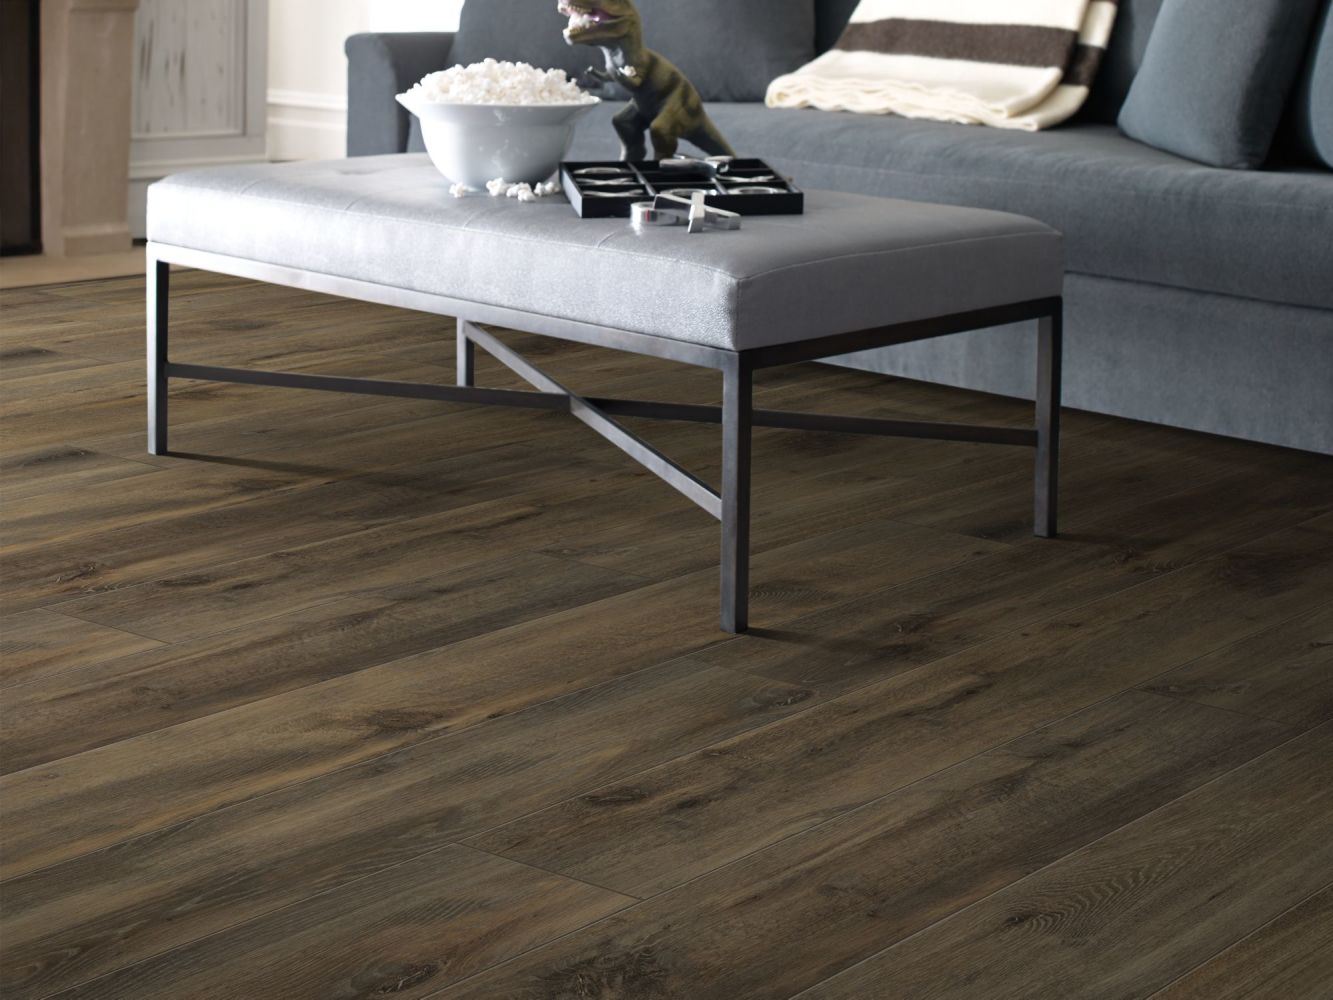 Shaw Floors Resilient Residential Allegiance+ Accent Chapman Oak 07067_2008V